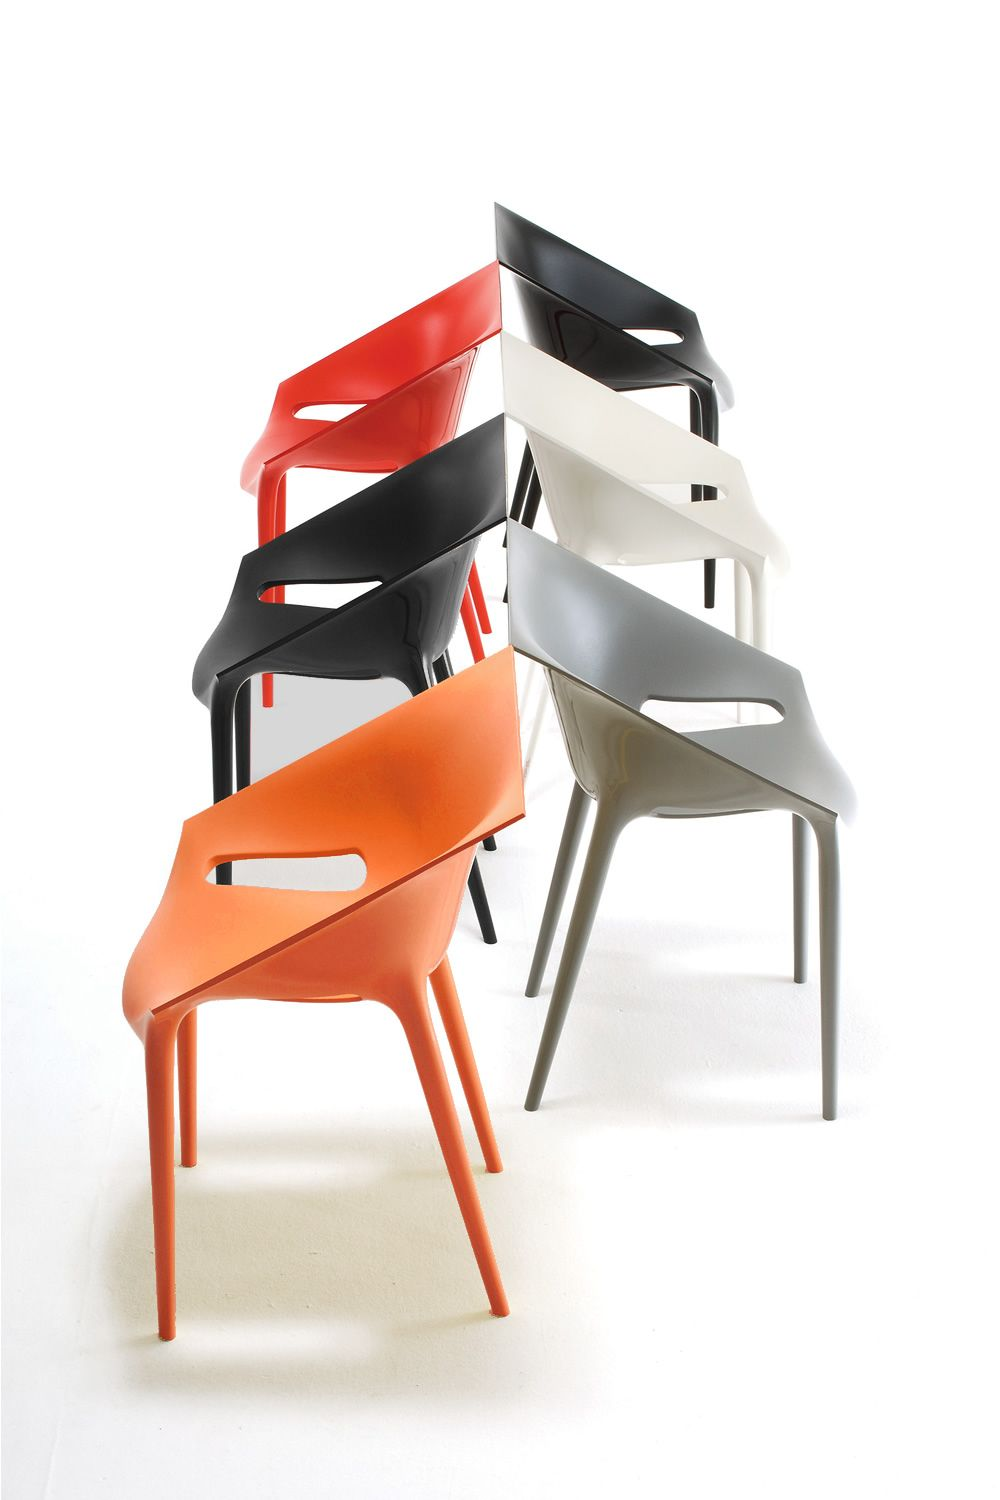 Dr yes fauteuil design kartell empilable en for Chaise design empilable